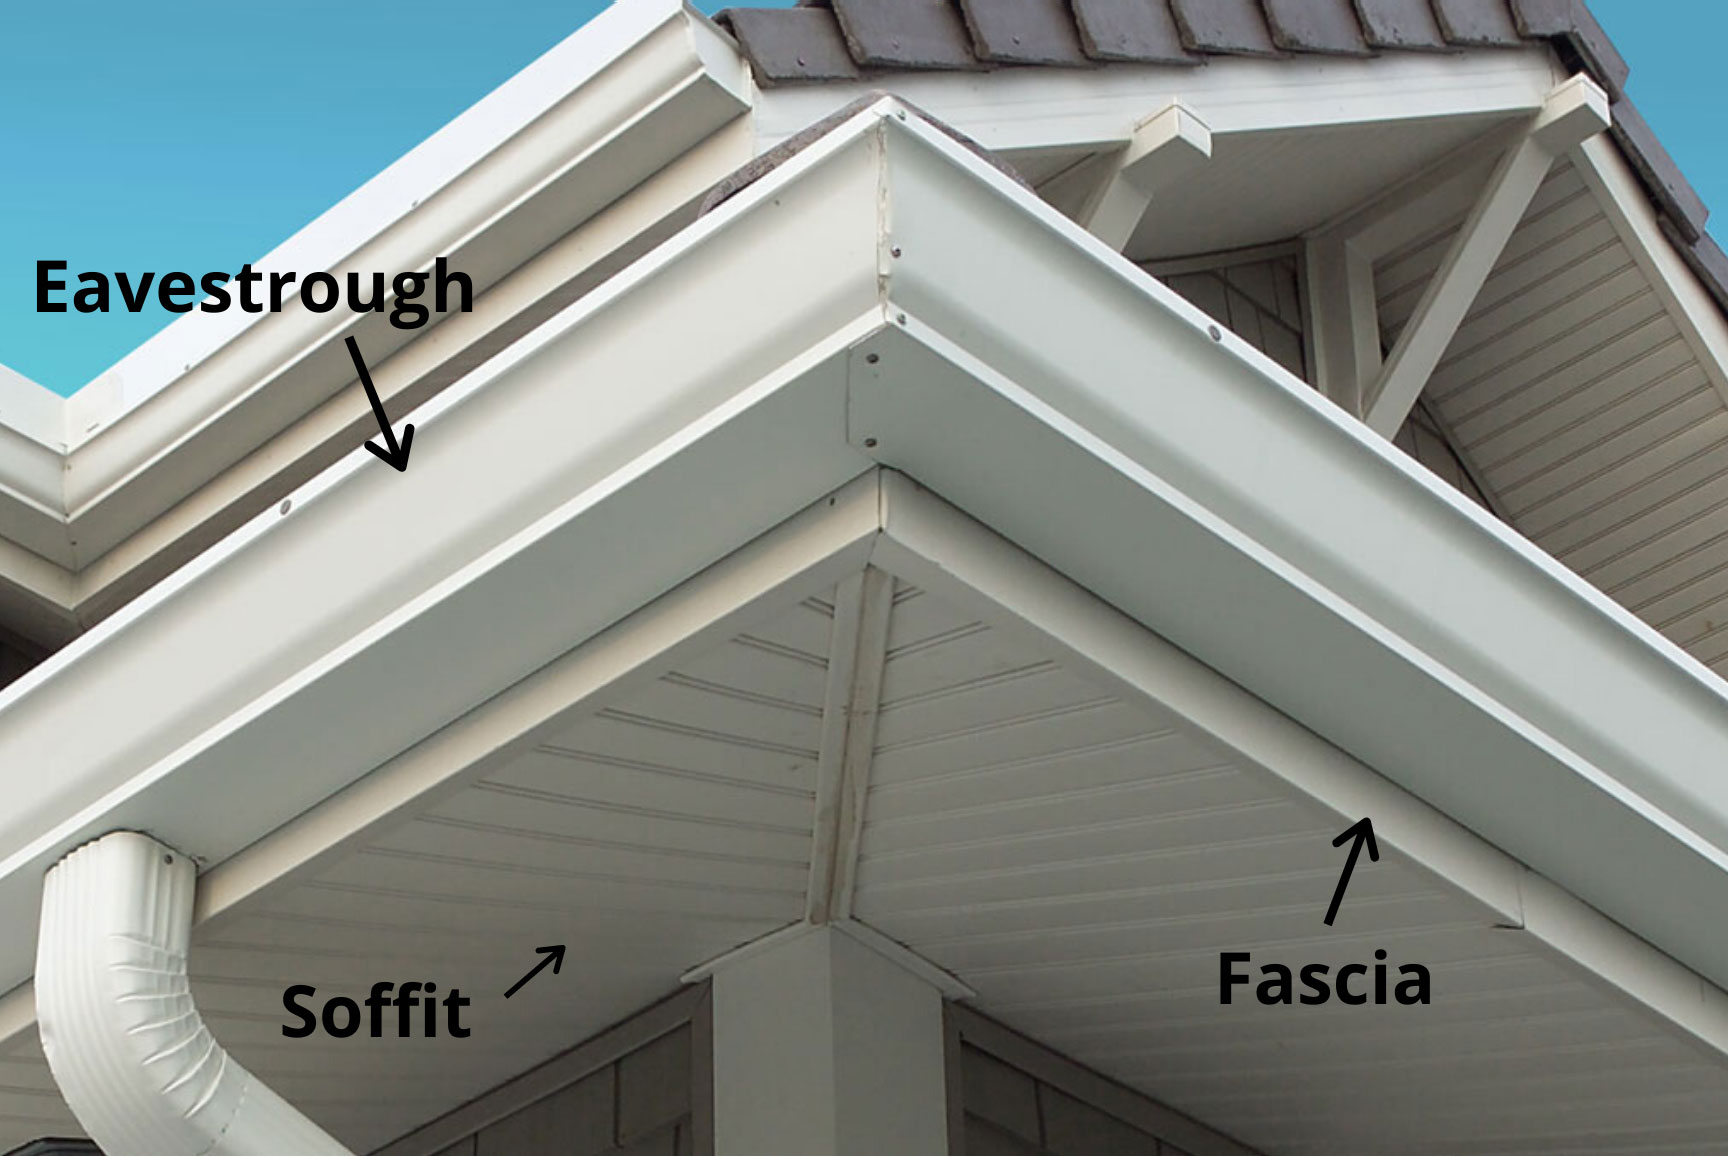 Picture of Eavestrough, Soffit, With Fascia